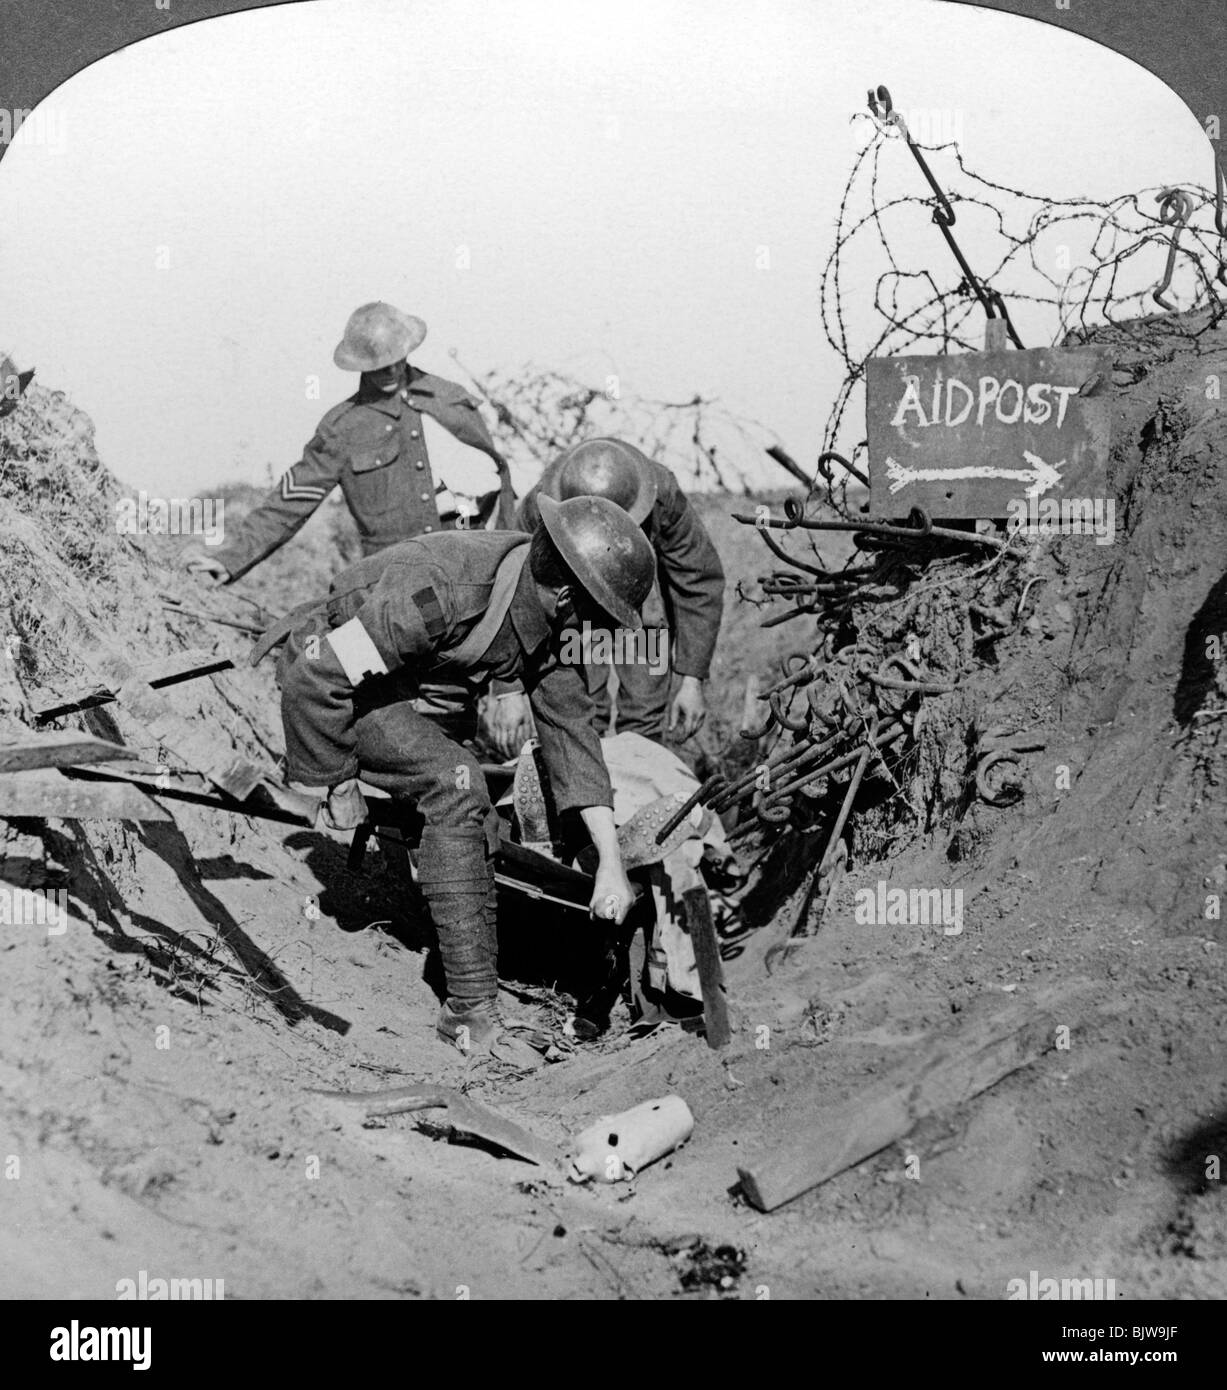 Carrying a wounded soldier to a first aid post, Passchendaele, Belgium, World War I, 1914-1918. - Stock Image